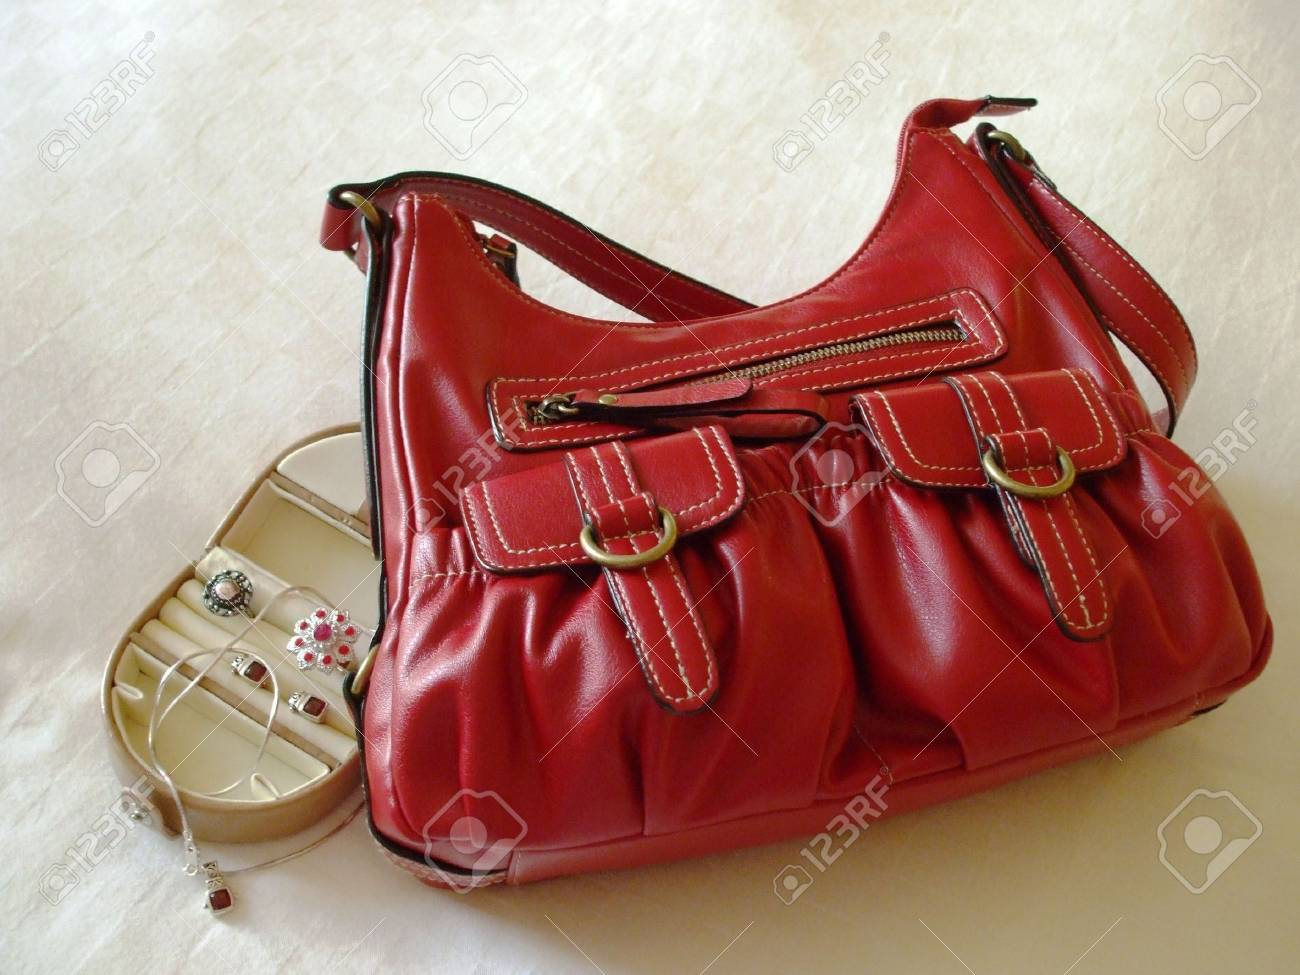 Small luggage - red handbag and a jewelry case Stock Photo - 3212642